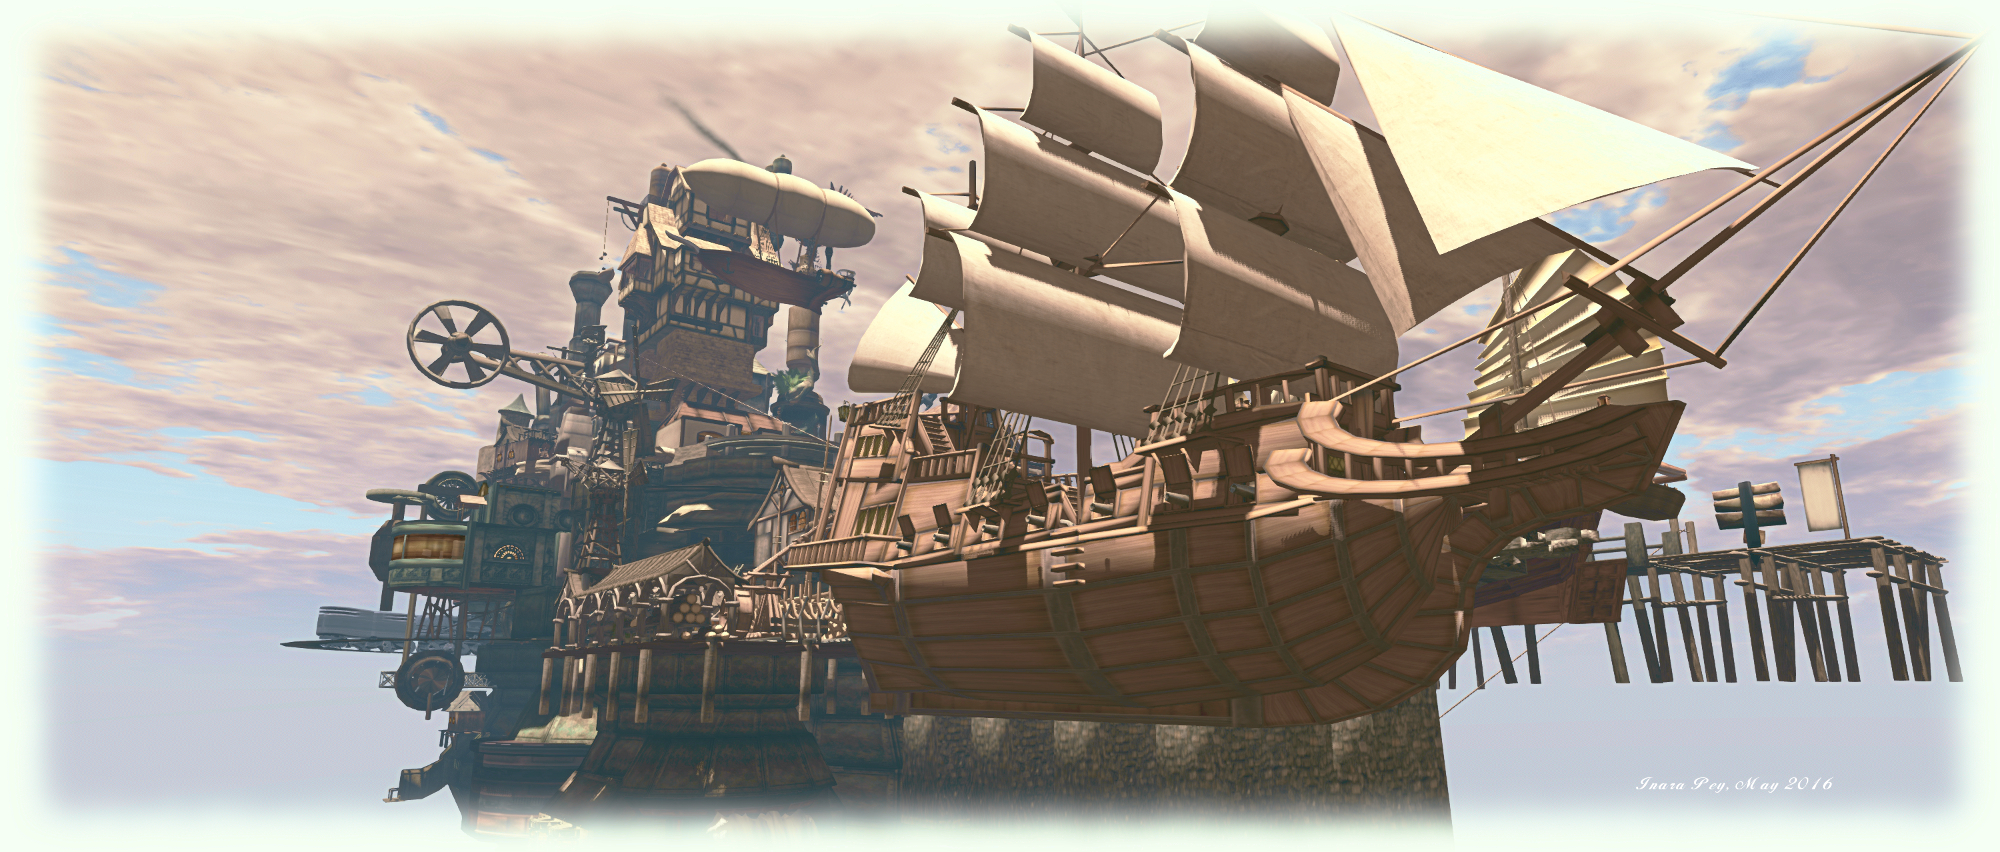 Airship Pirates Town; Inara Pey, May 2016, on Flickr